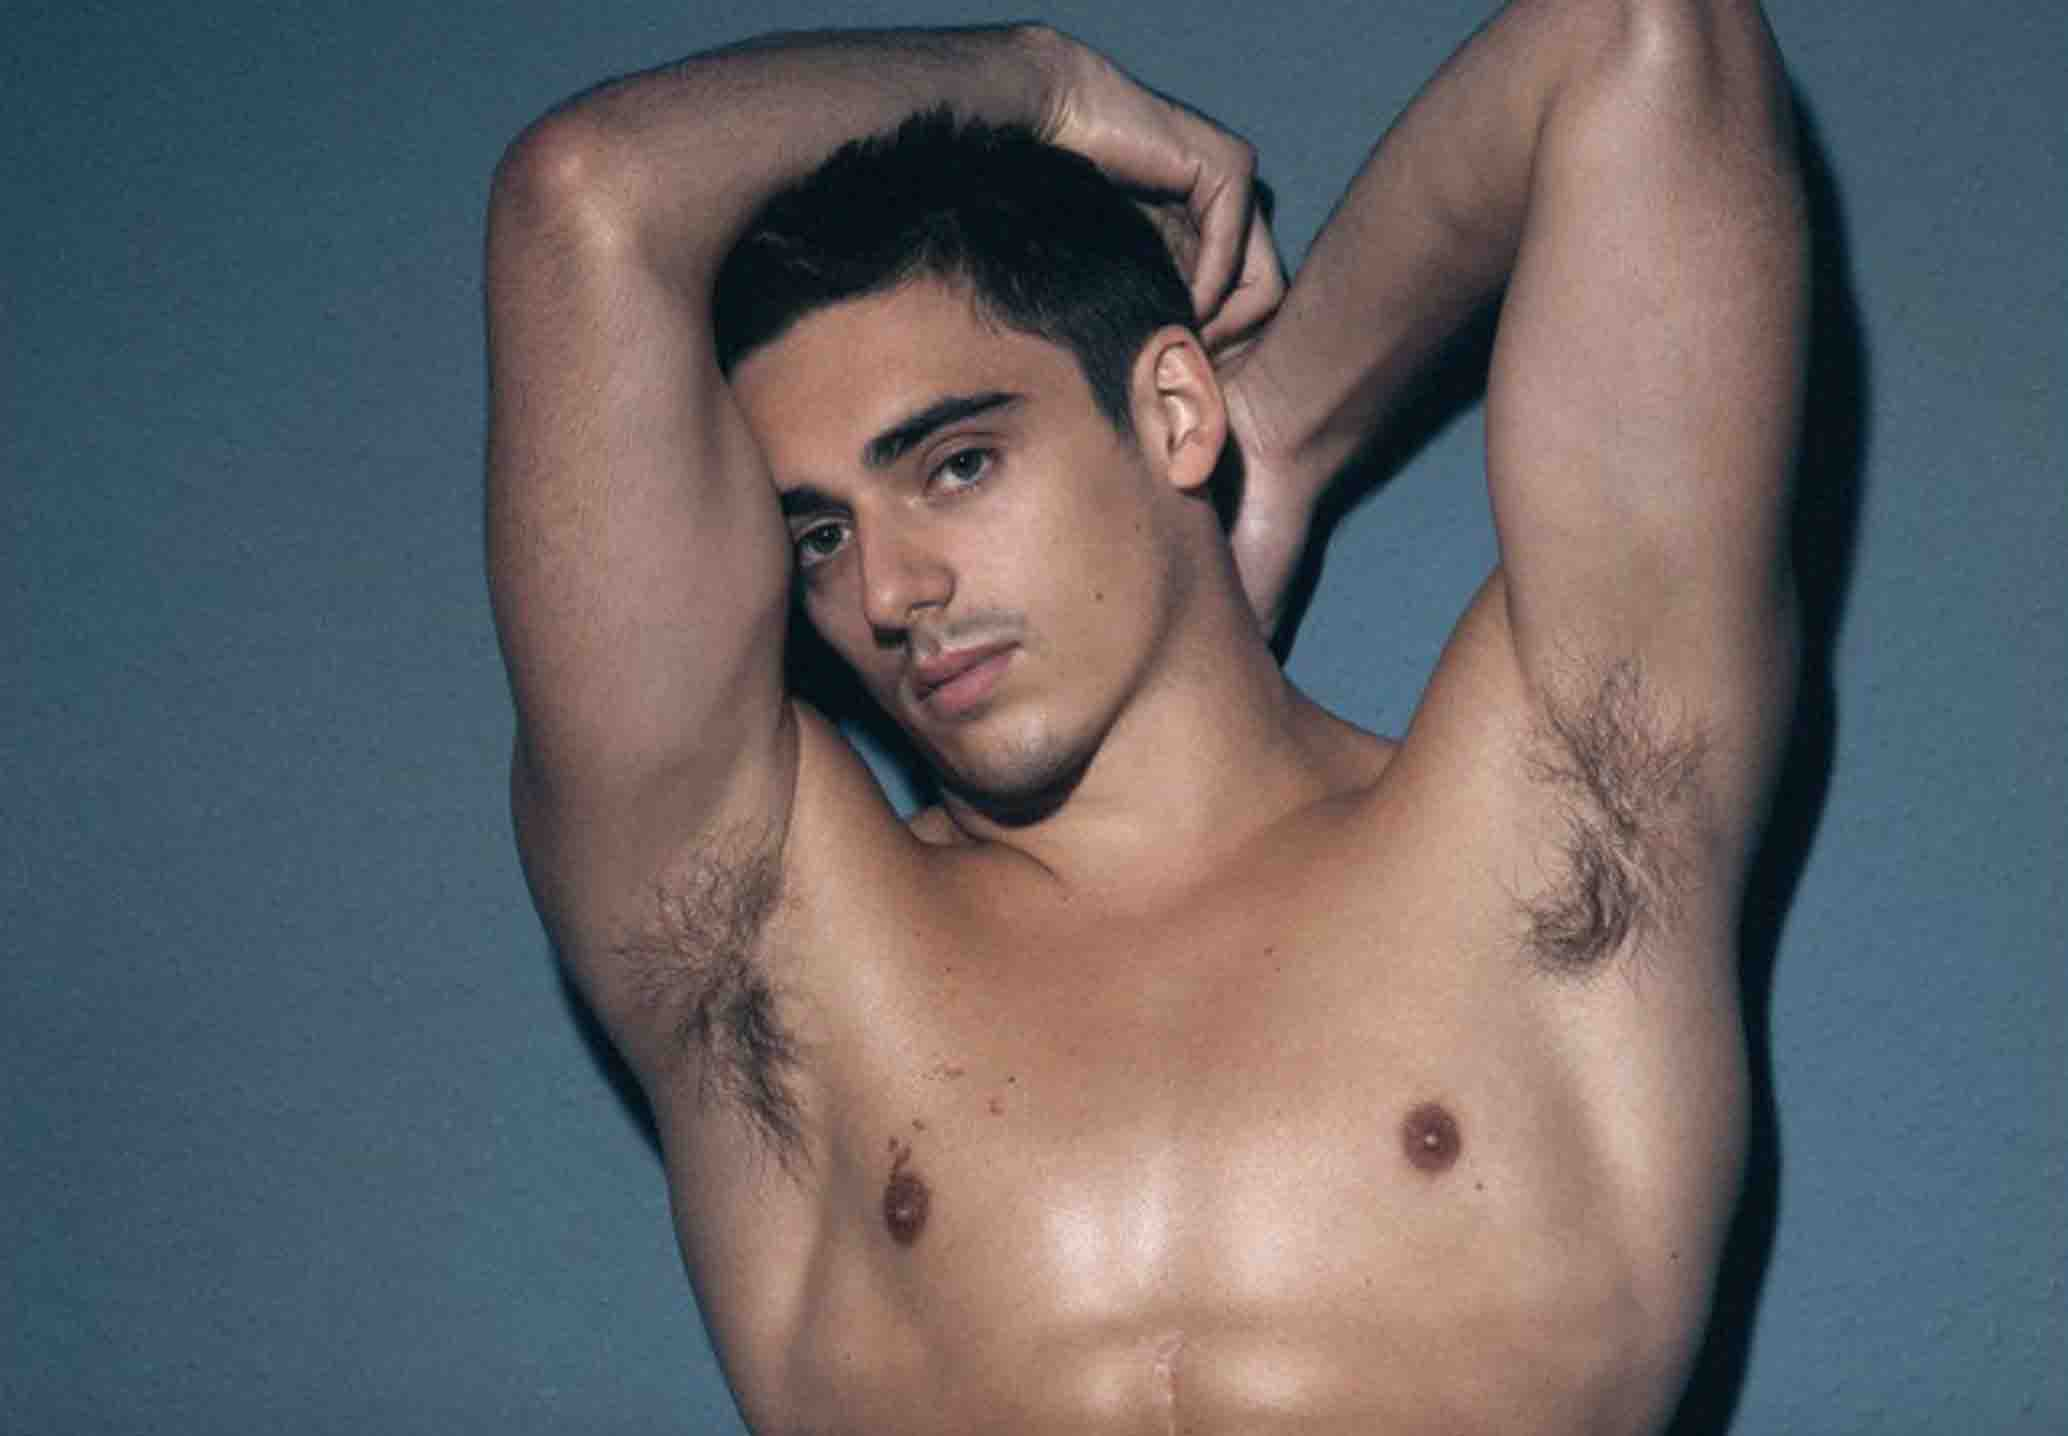 Chris Mears Video Leak